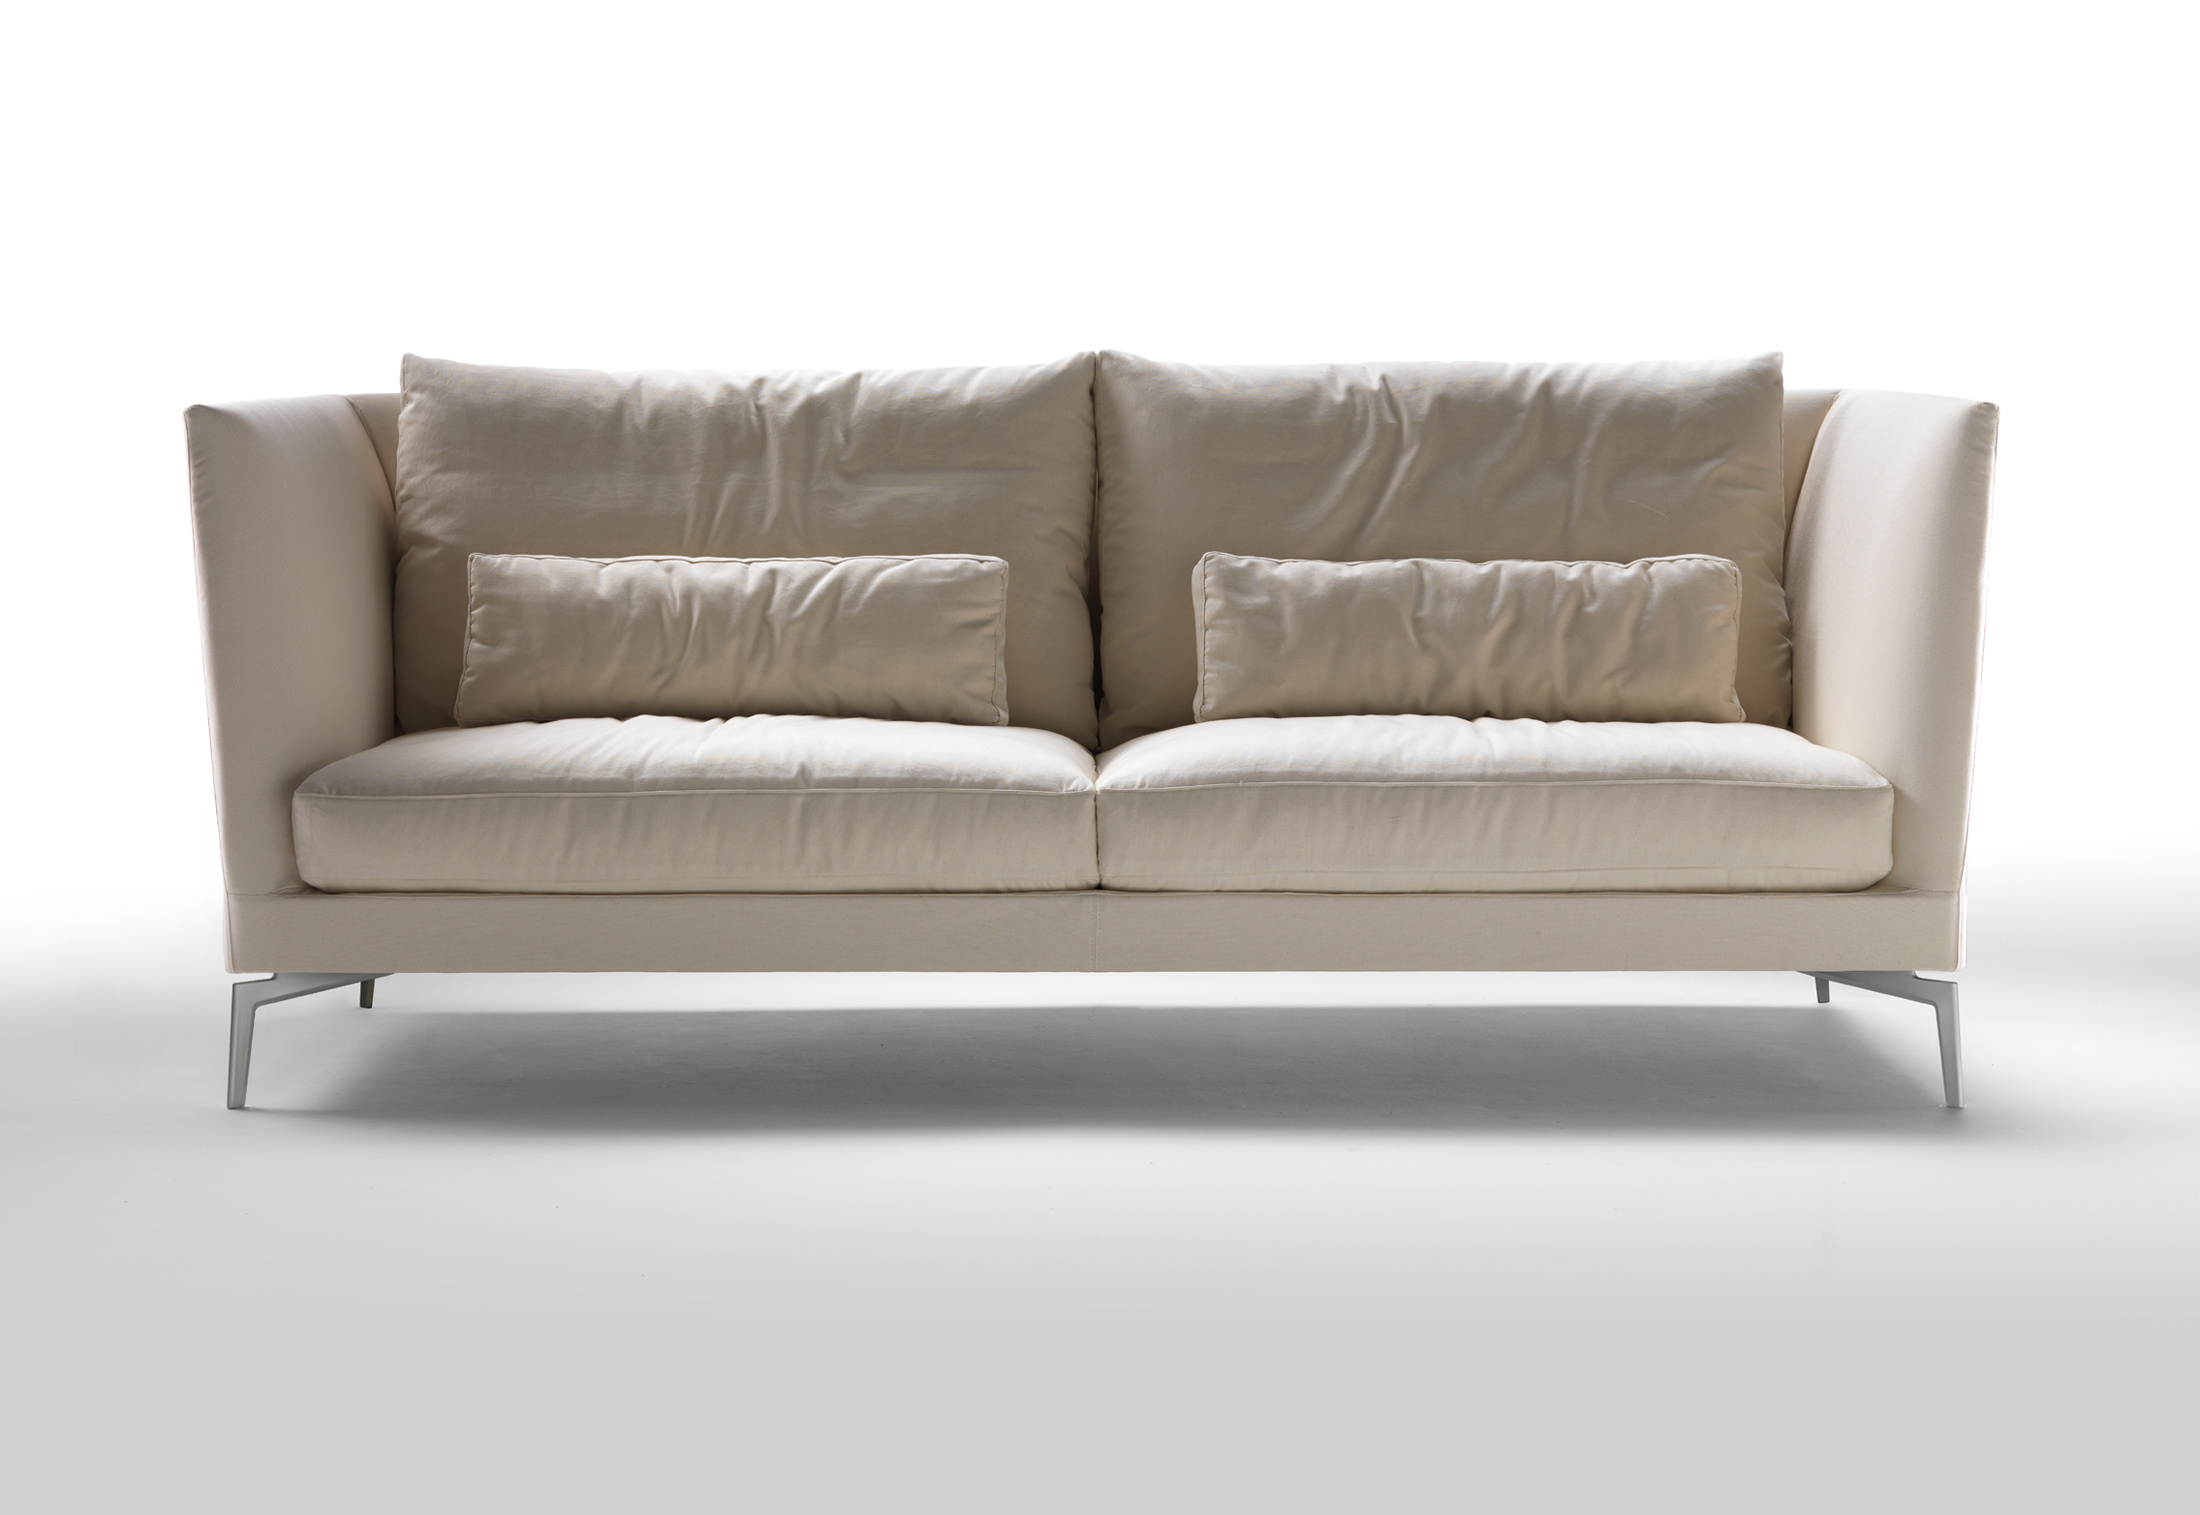 Flexform Feel Good Sessel Preis Feel Good Sofa Von Flexform Stylepark